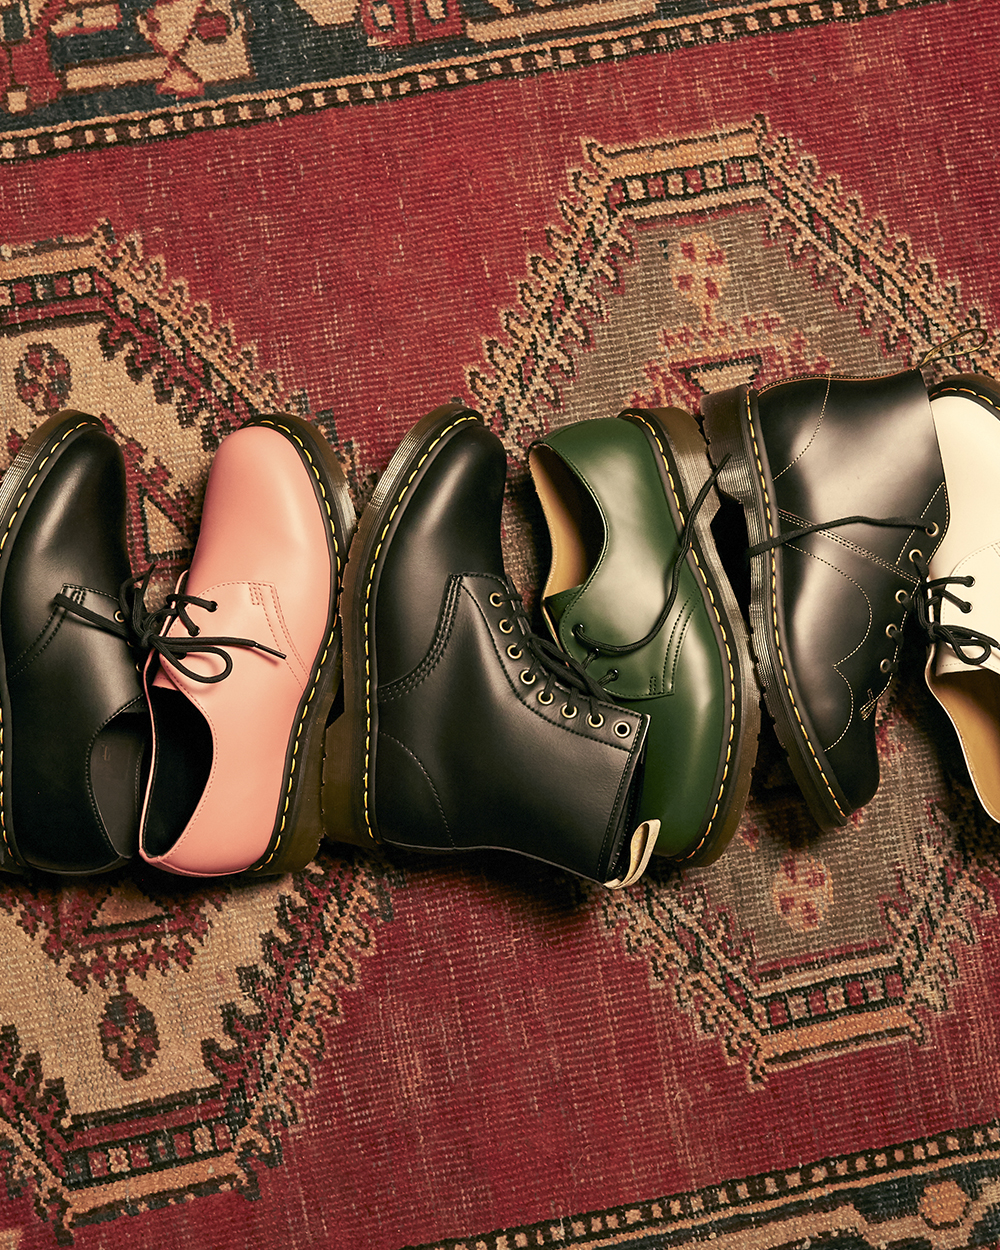 Dr. Martens: a brief history of subcultures and self-expression